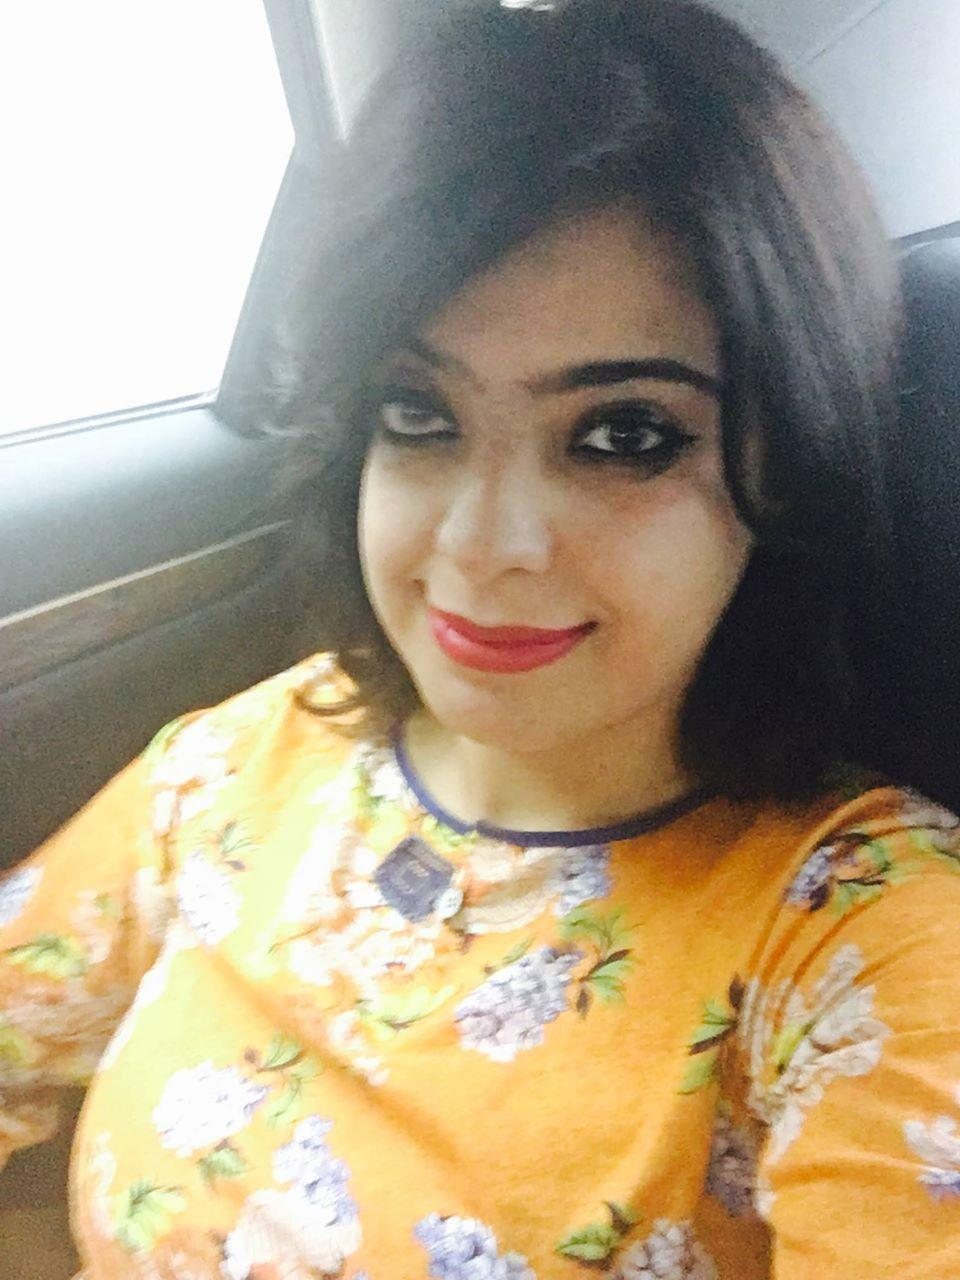 plano muslim singles Plano singles and plano dating for singles in plano, tx find more local plano singles for plano chat, plano dating and plano love.